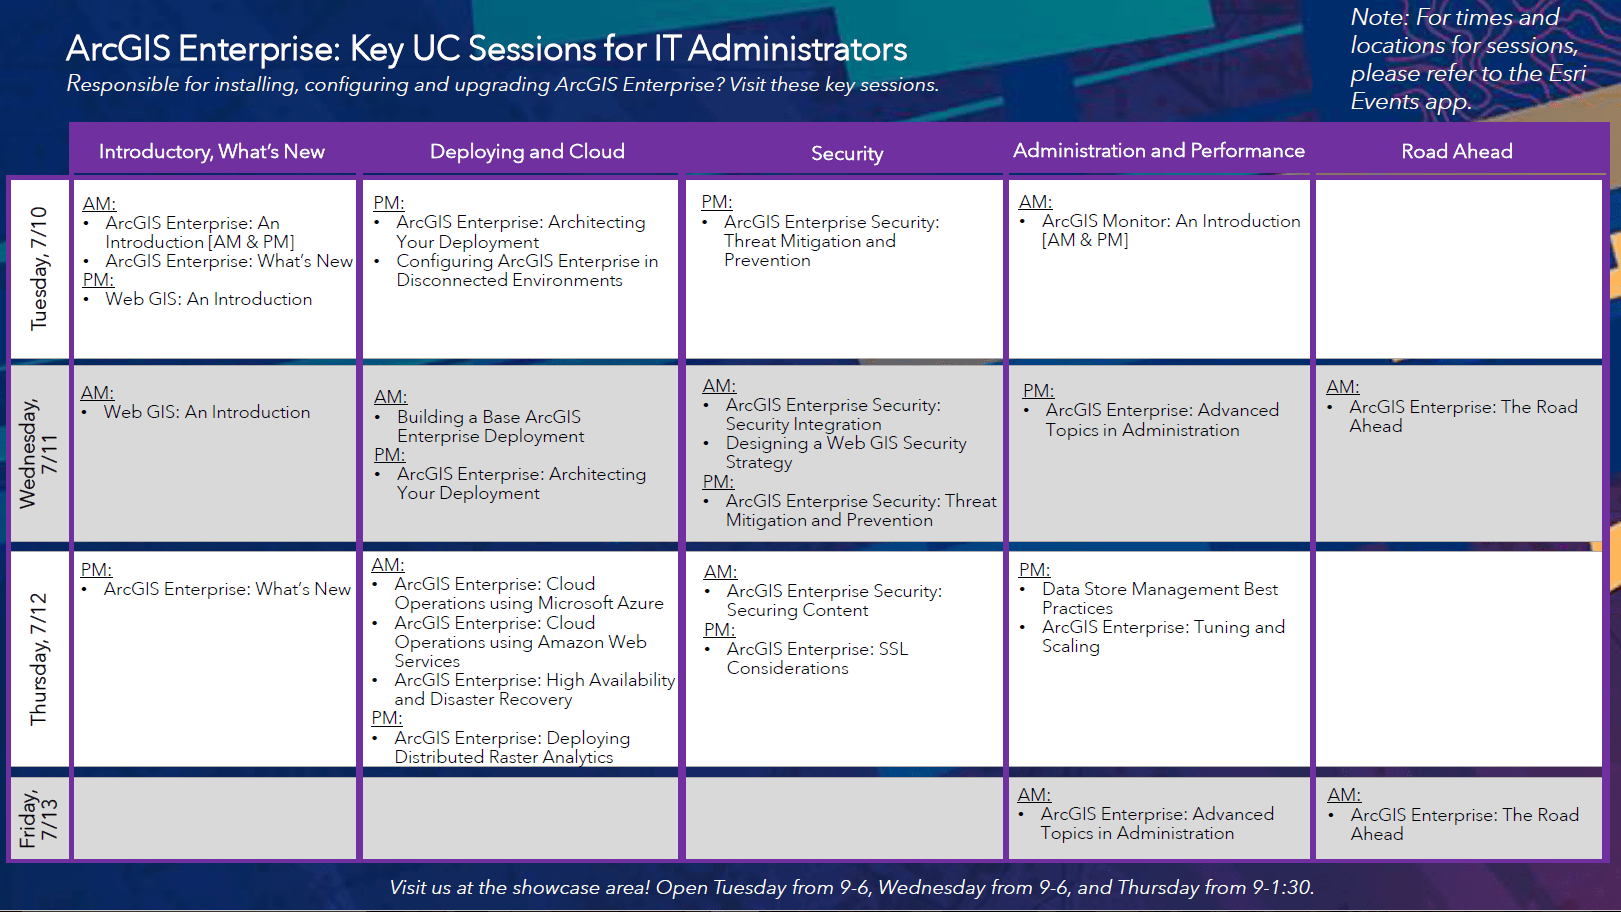 ArcGIS Enterprise sessions recommended for IT Administrators. For the full pdf, visit the link included here in the blog.